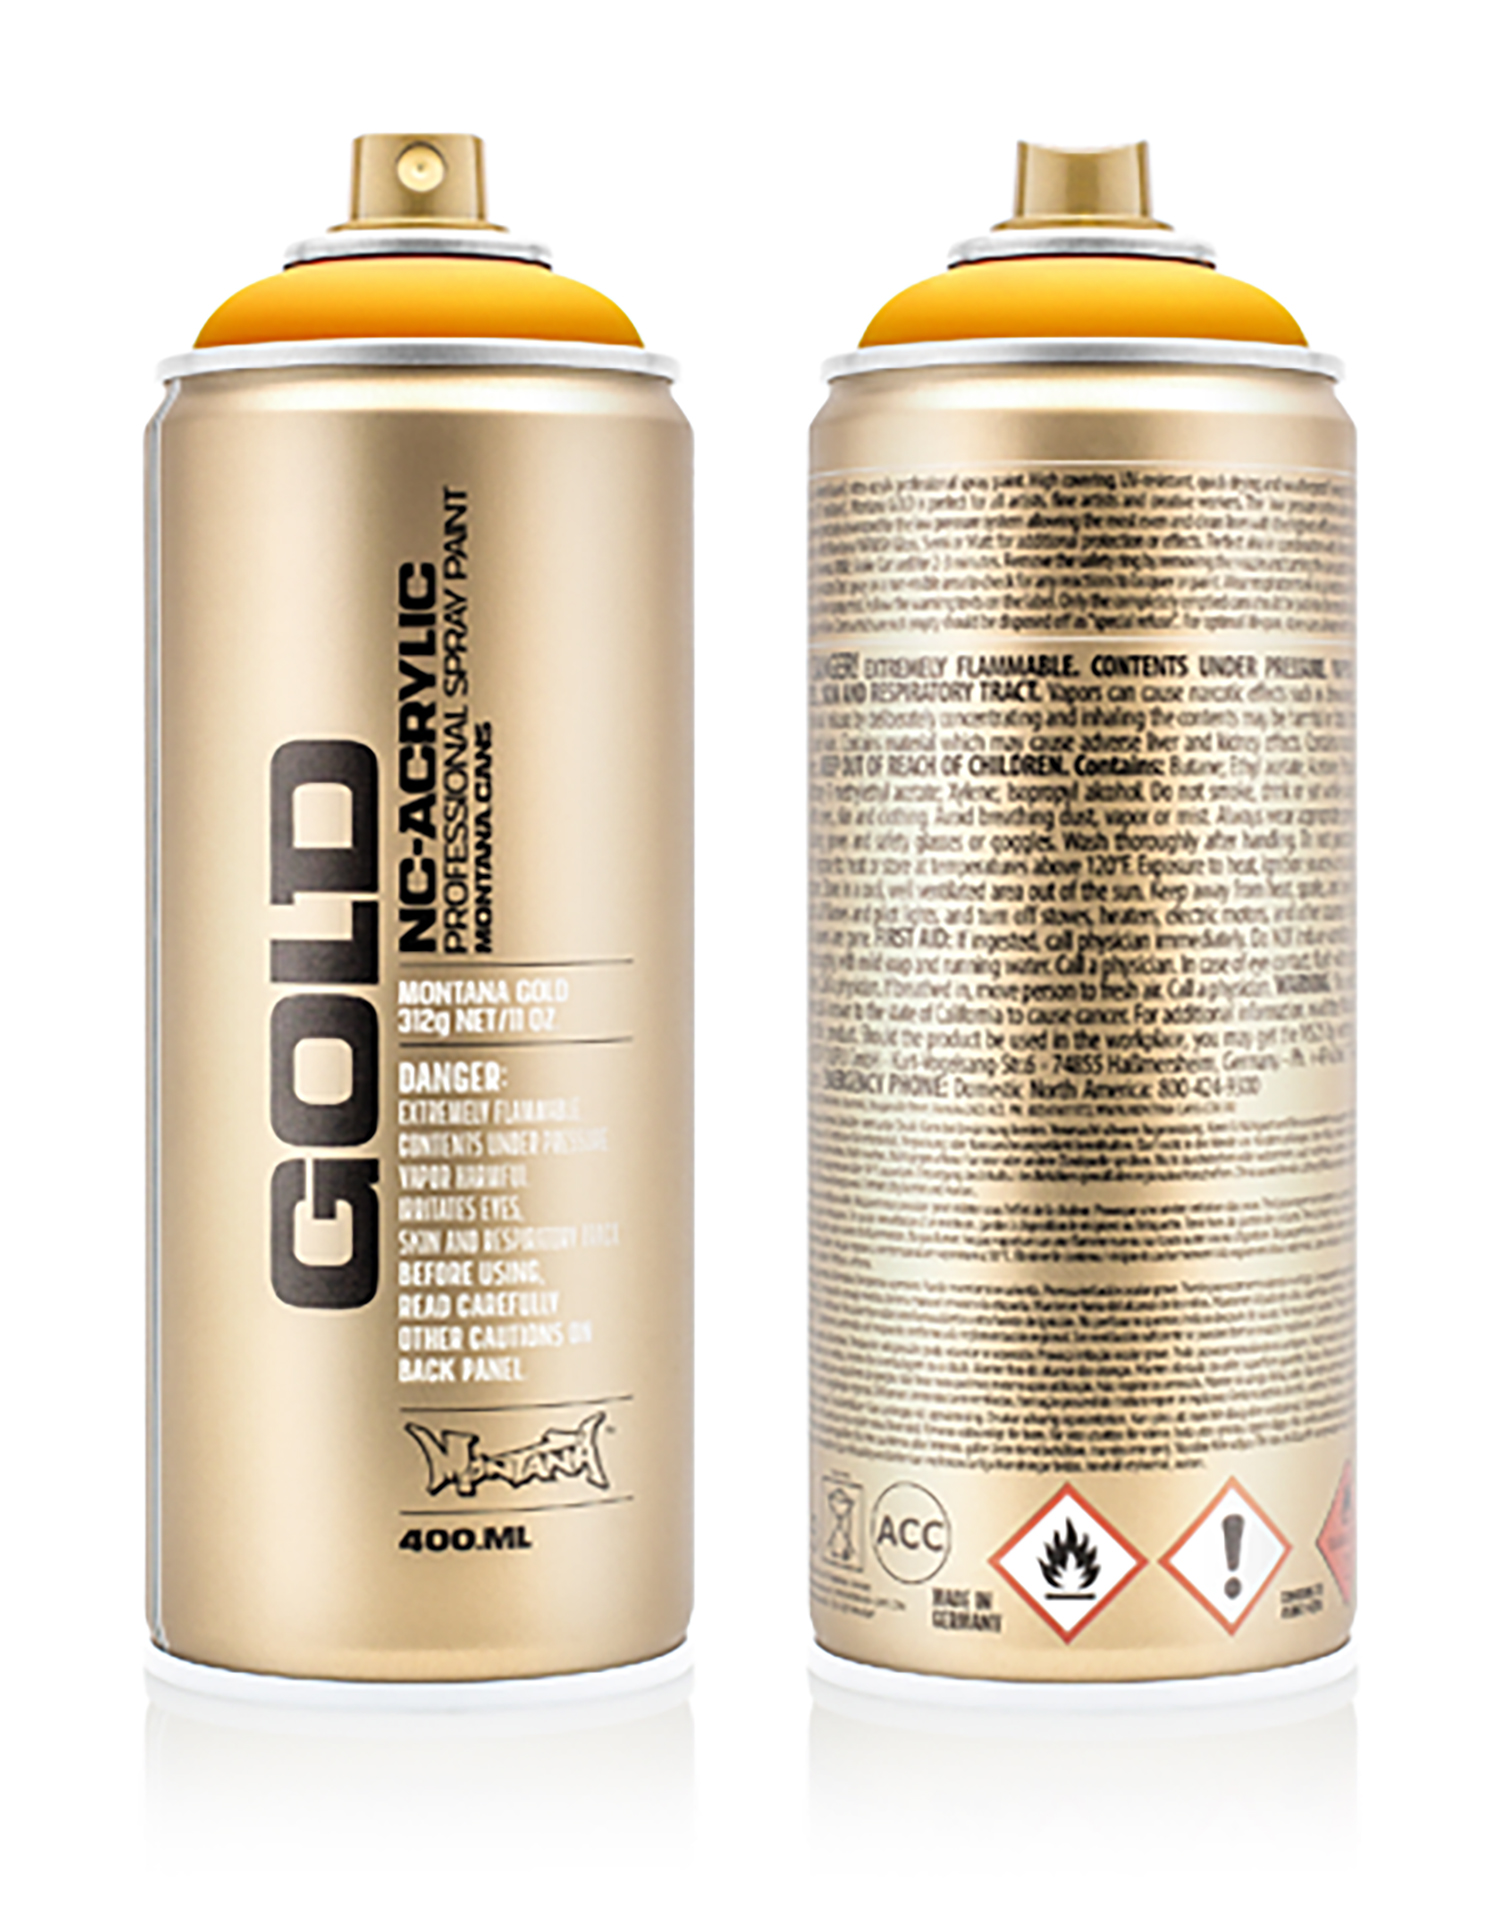 MONTANA-GOLD-SPRAY-400ML-G-1230